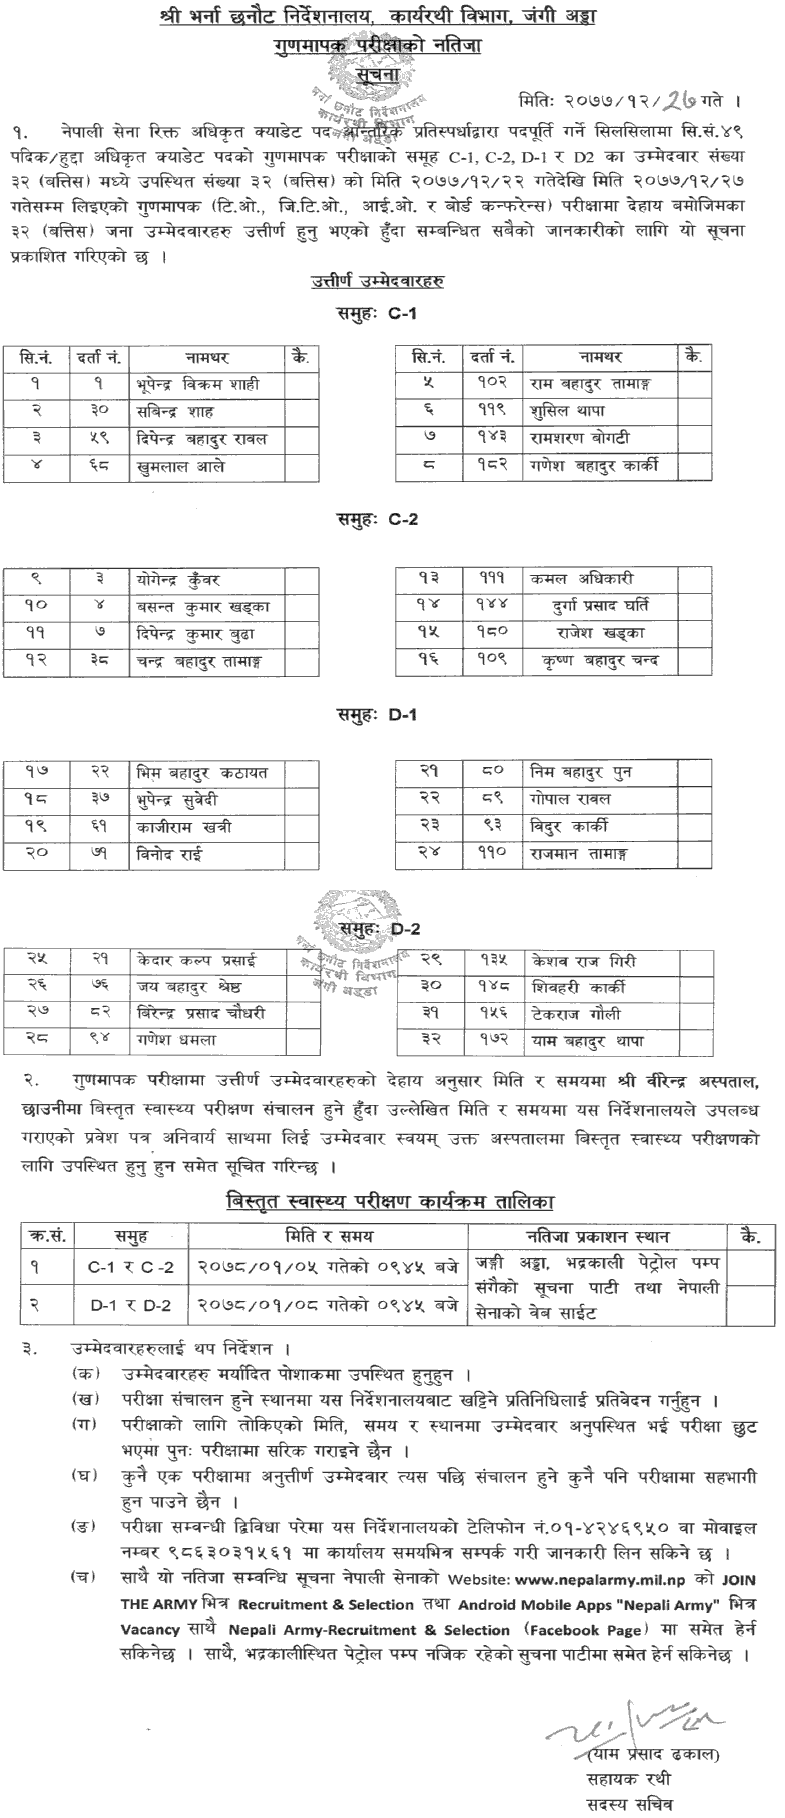 Nepal Army Officer Cadet (Hudda - JCO, NCO) Result of TO, JTO, IO and Board Conference